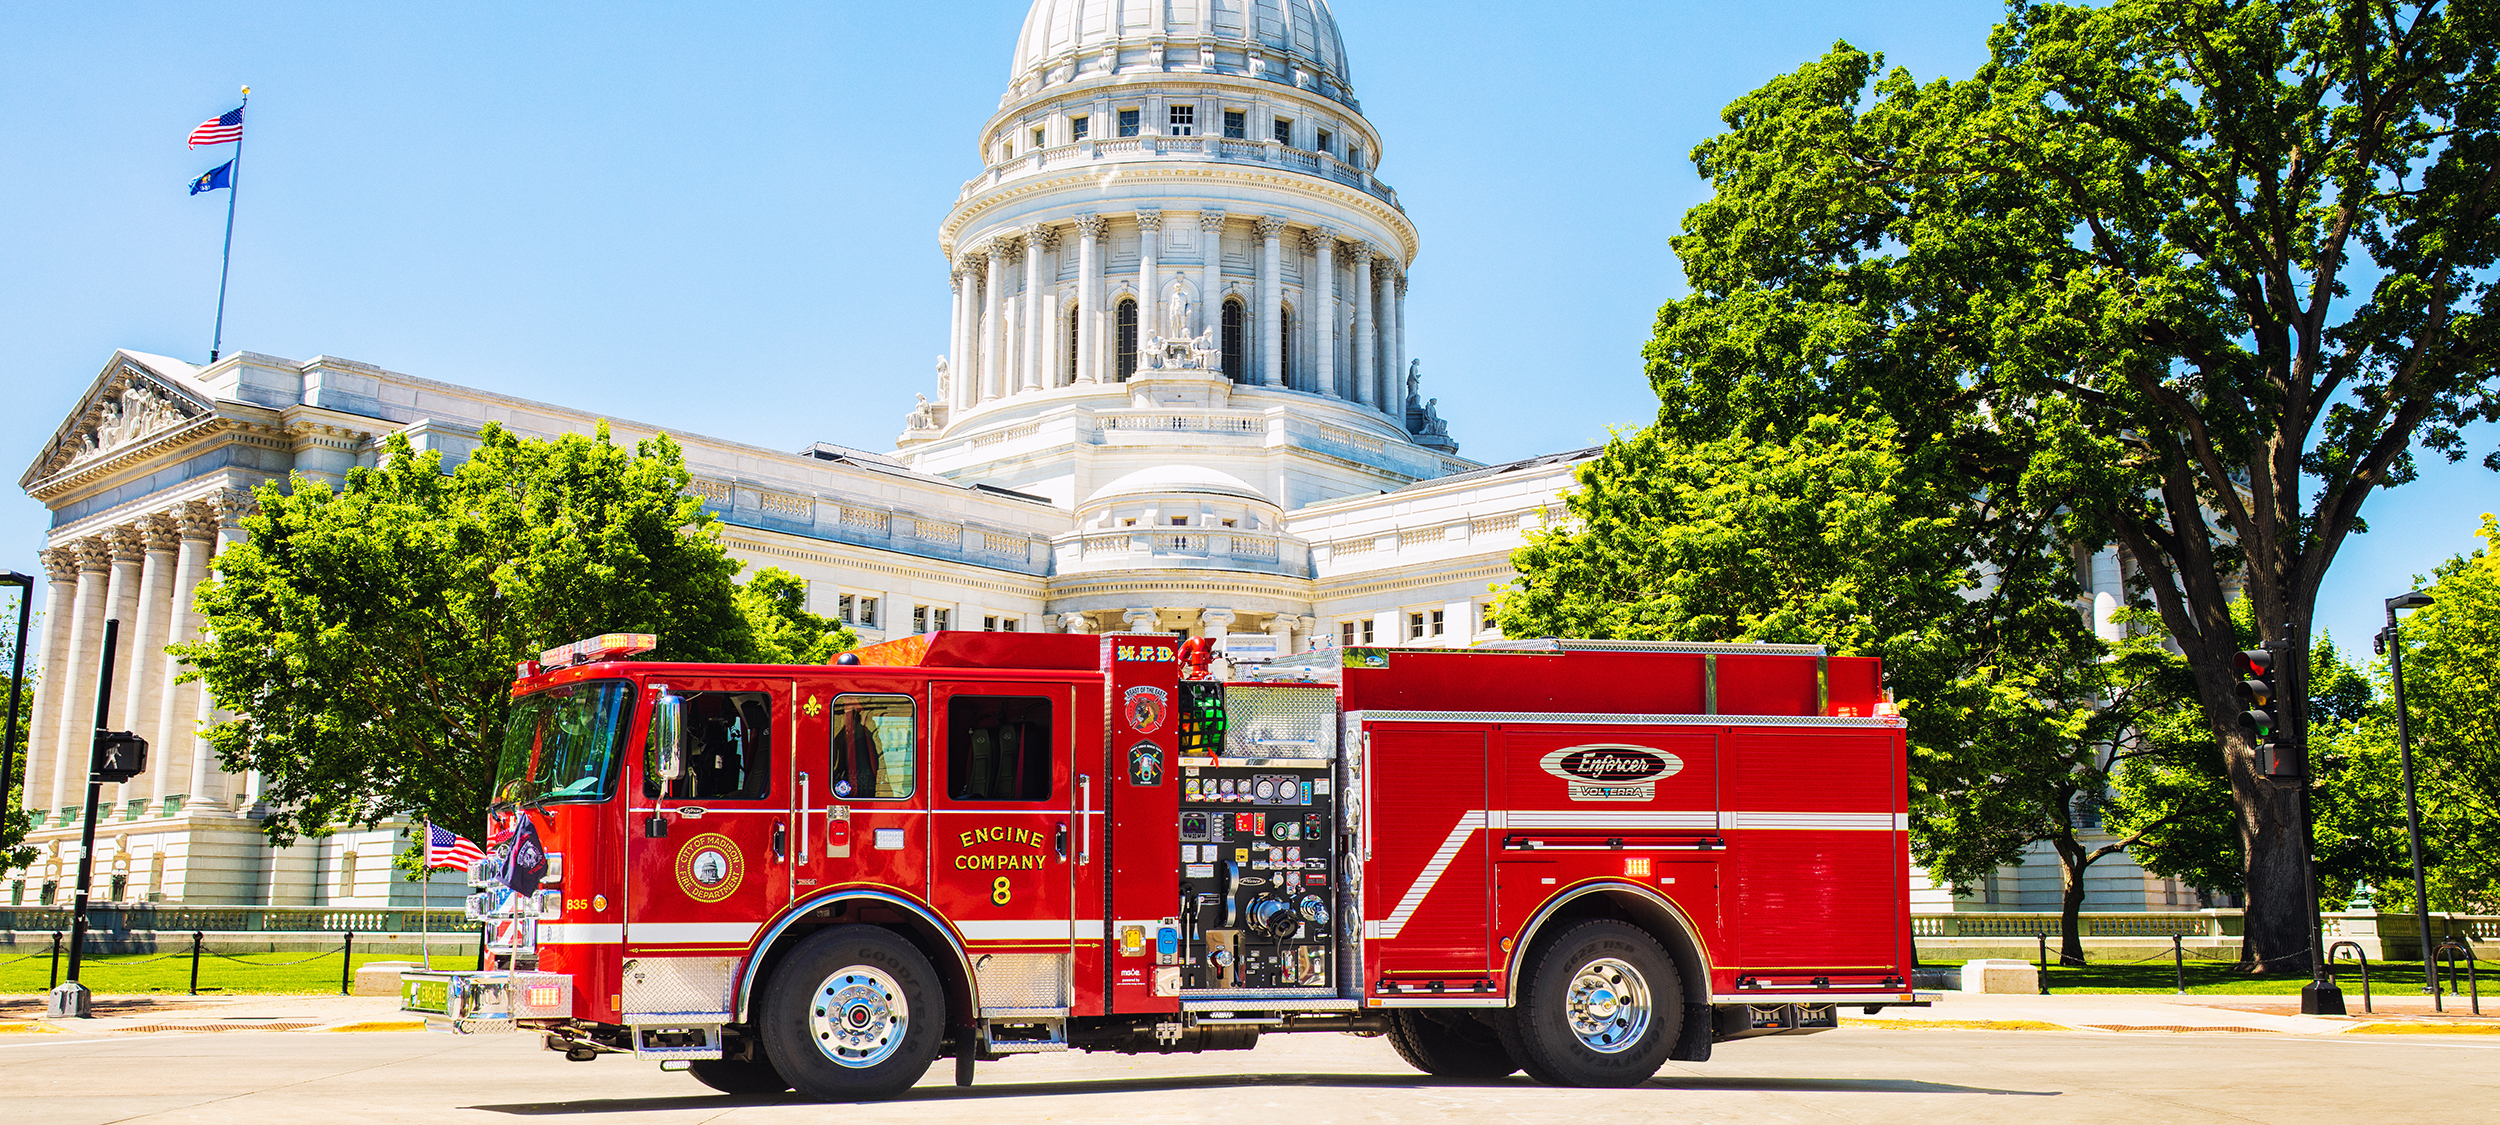 Electric Fire Truck for the City of Madison Wisconsin